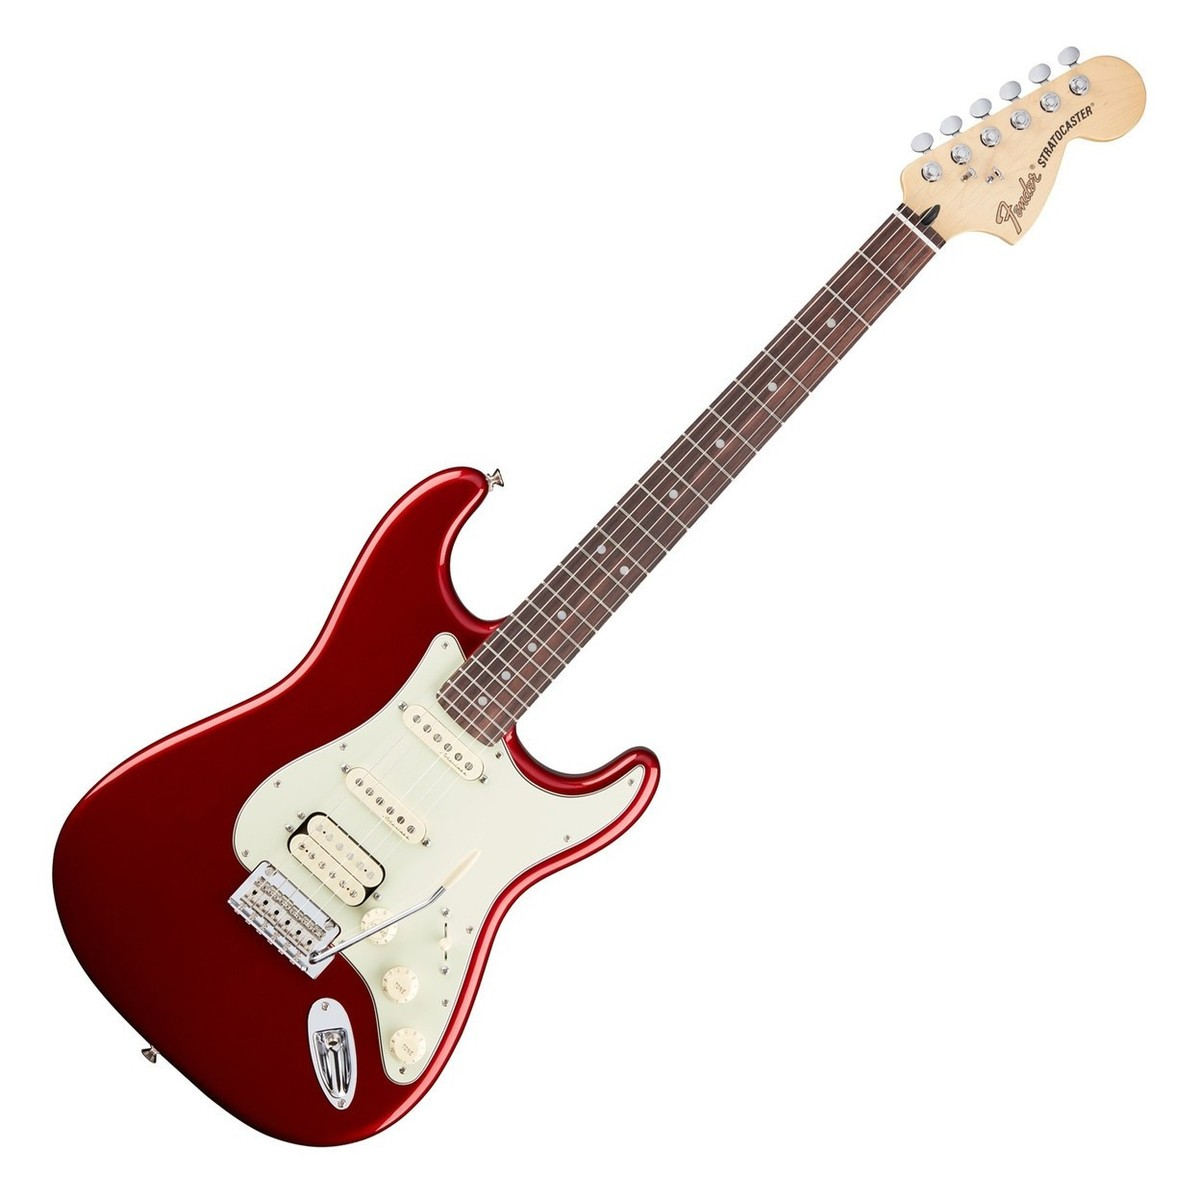 fender deluxe stratocaster hss electric guitar pf candy apple red at. Black Bedroom Furniture Sets. Home Design Ideas